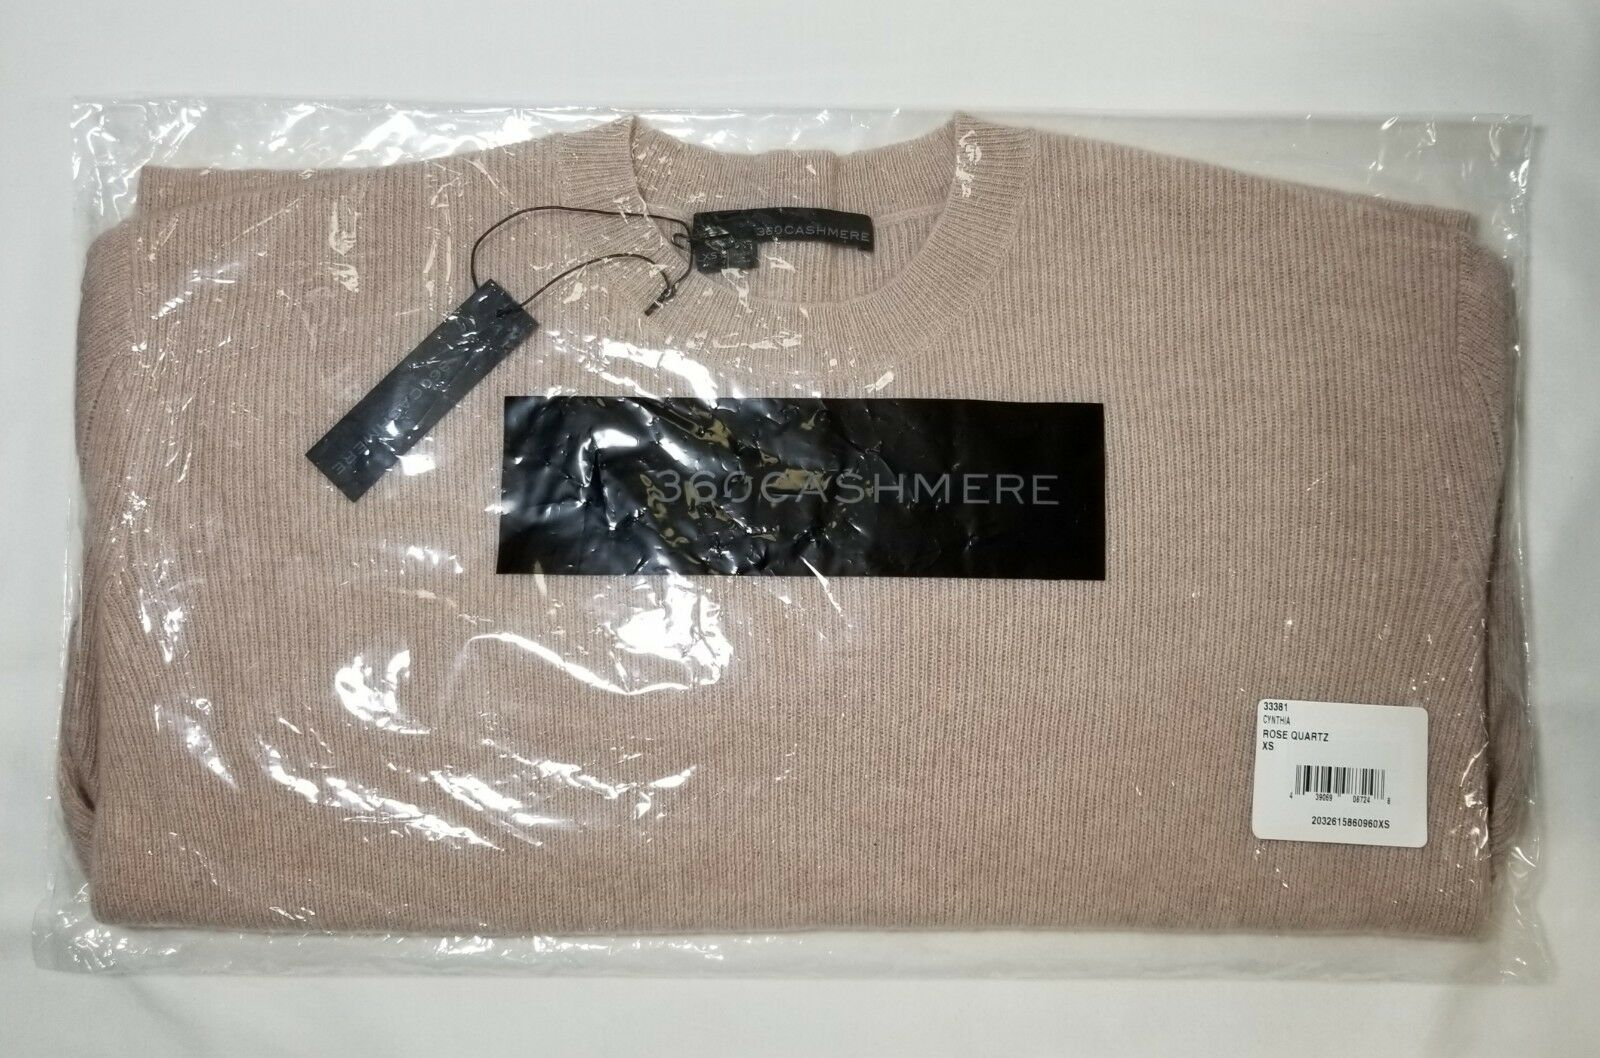 NWT 360 Cashmere Cynthia Ribbed Knit Cashmere Sweater Sweater Sweater pink Size XS,S,M  288 87550b